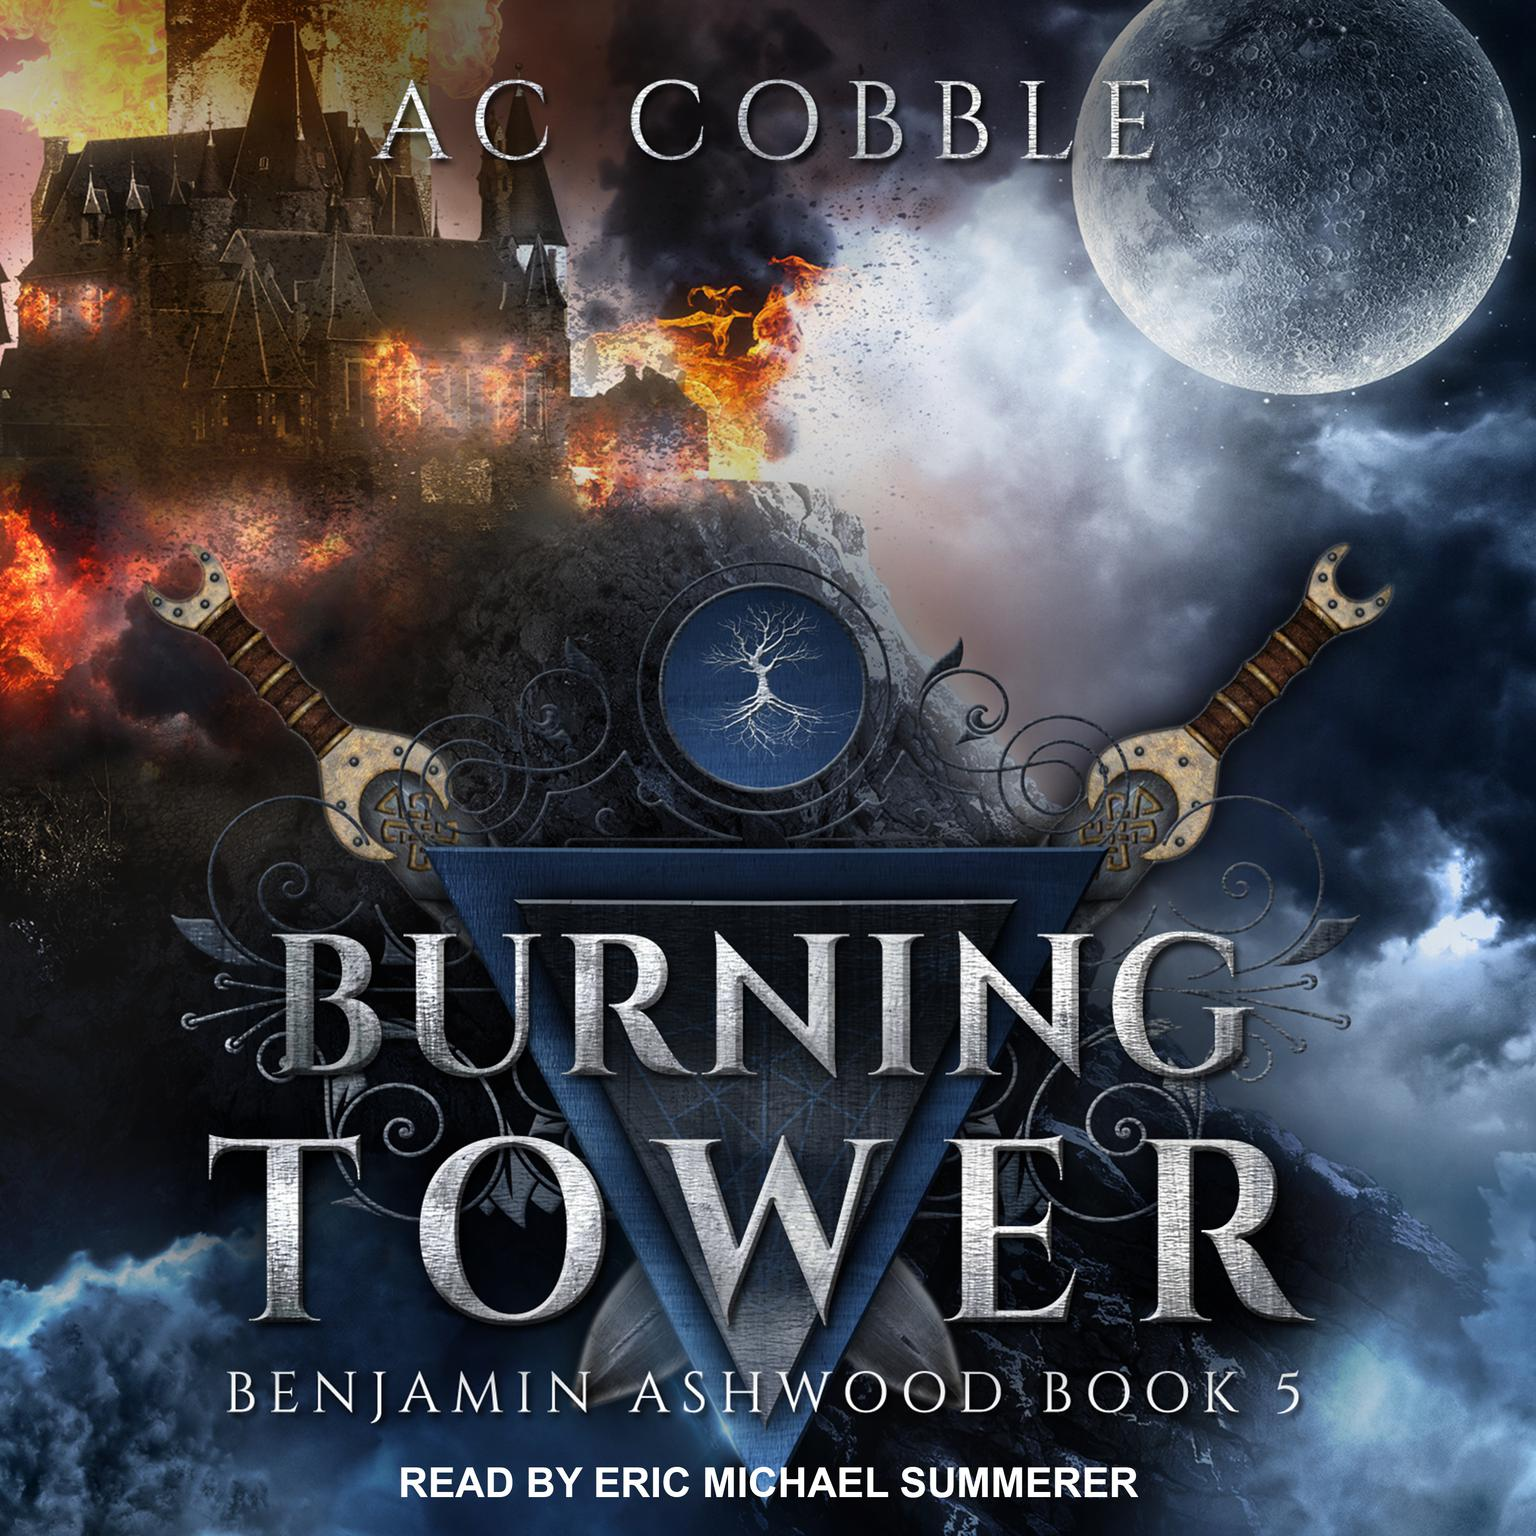 Burning Tower Audiobook, by AC Cobble